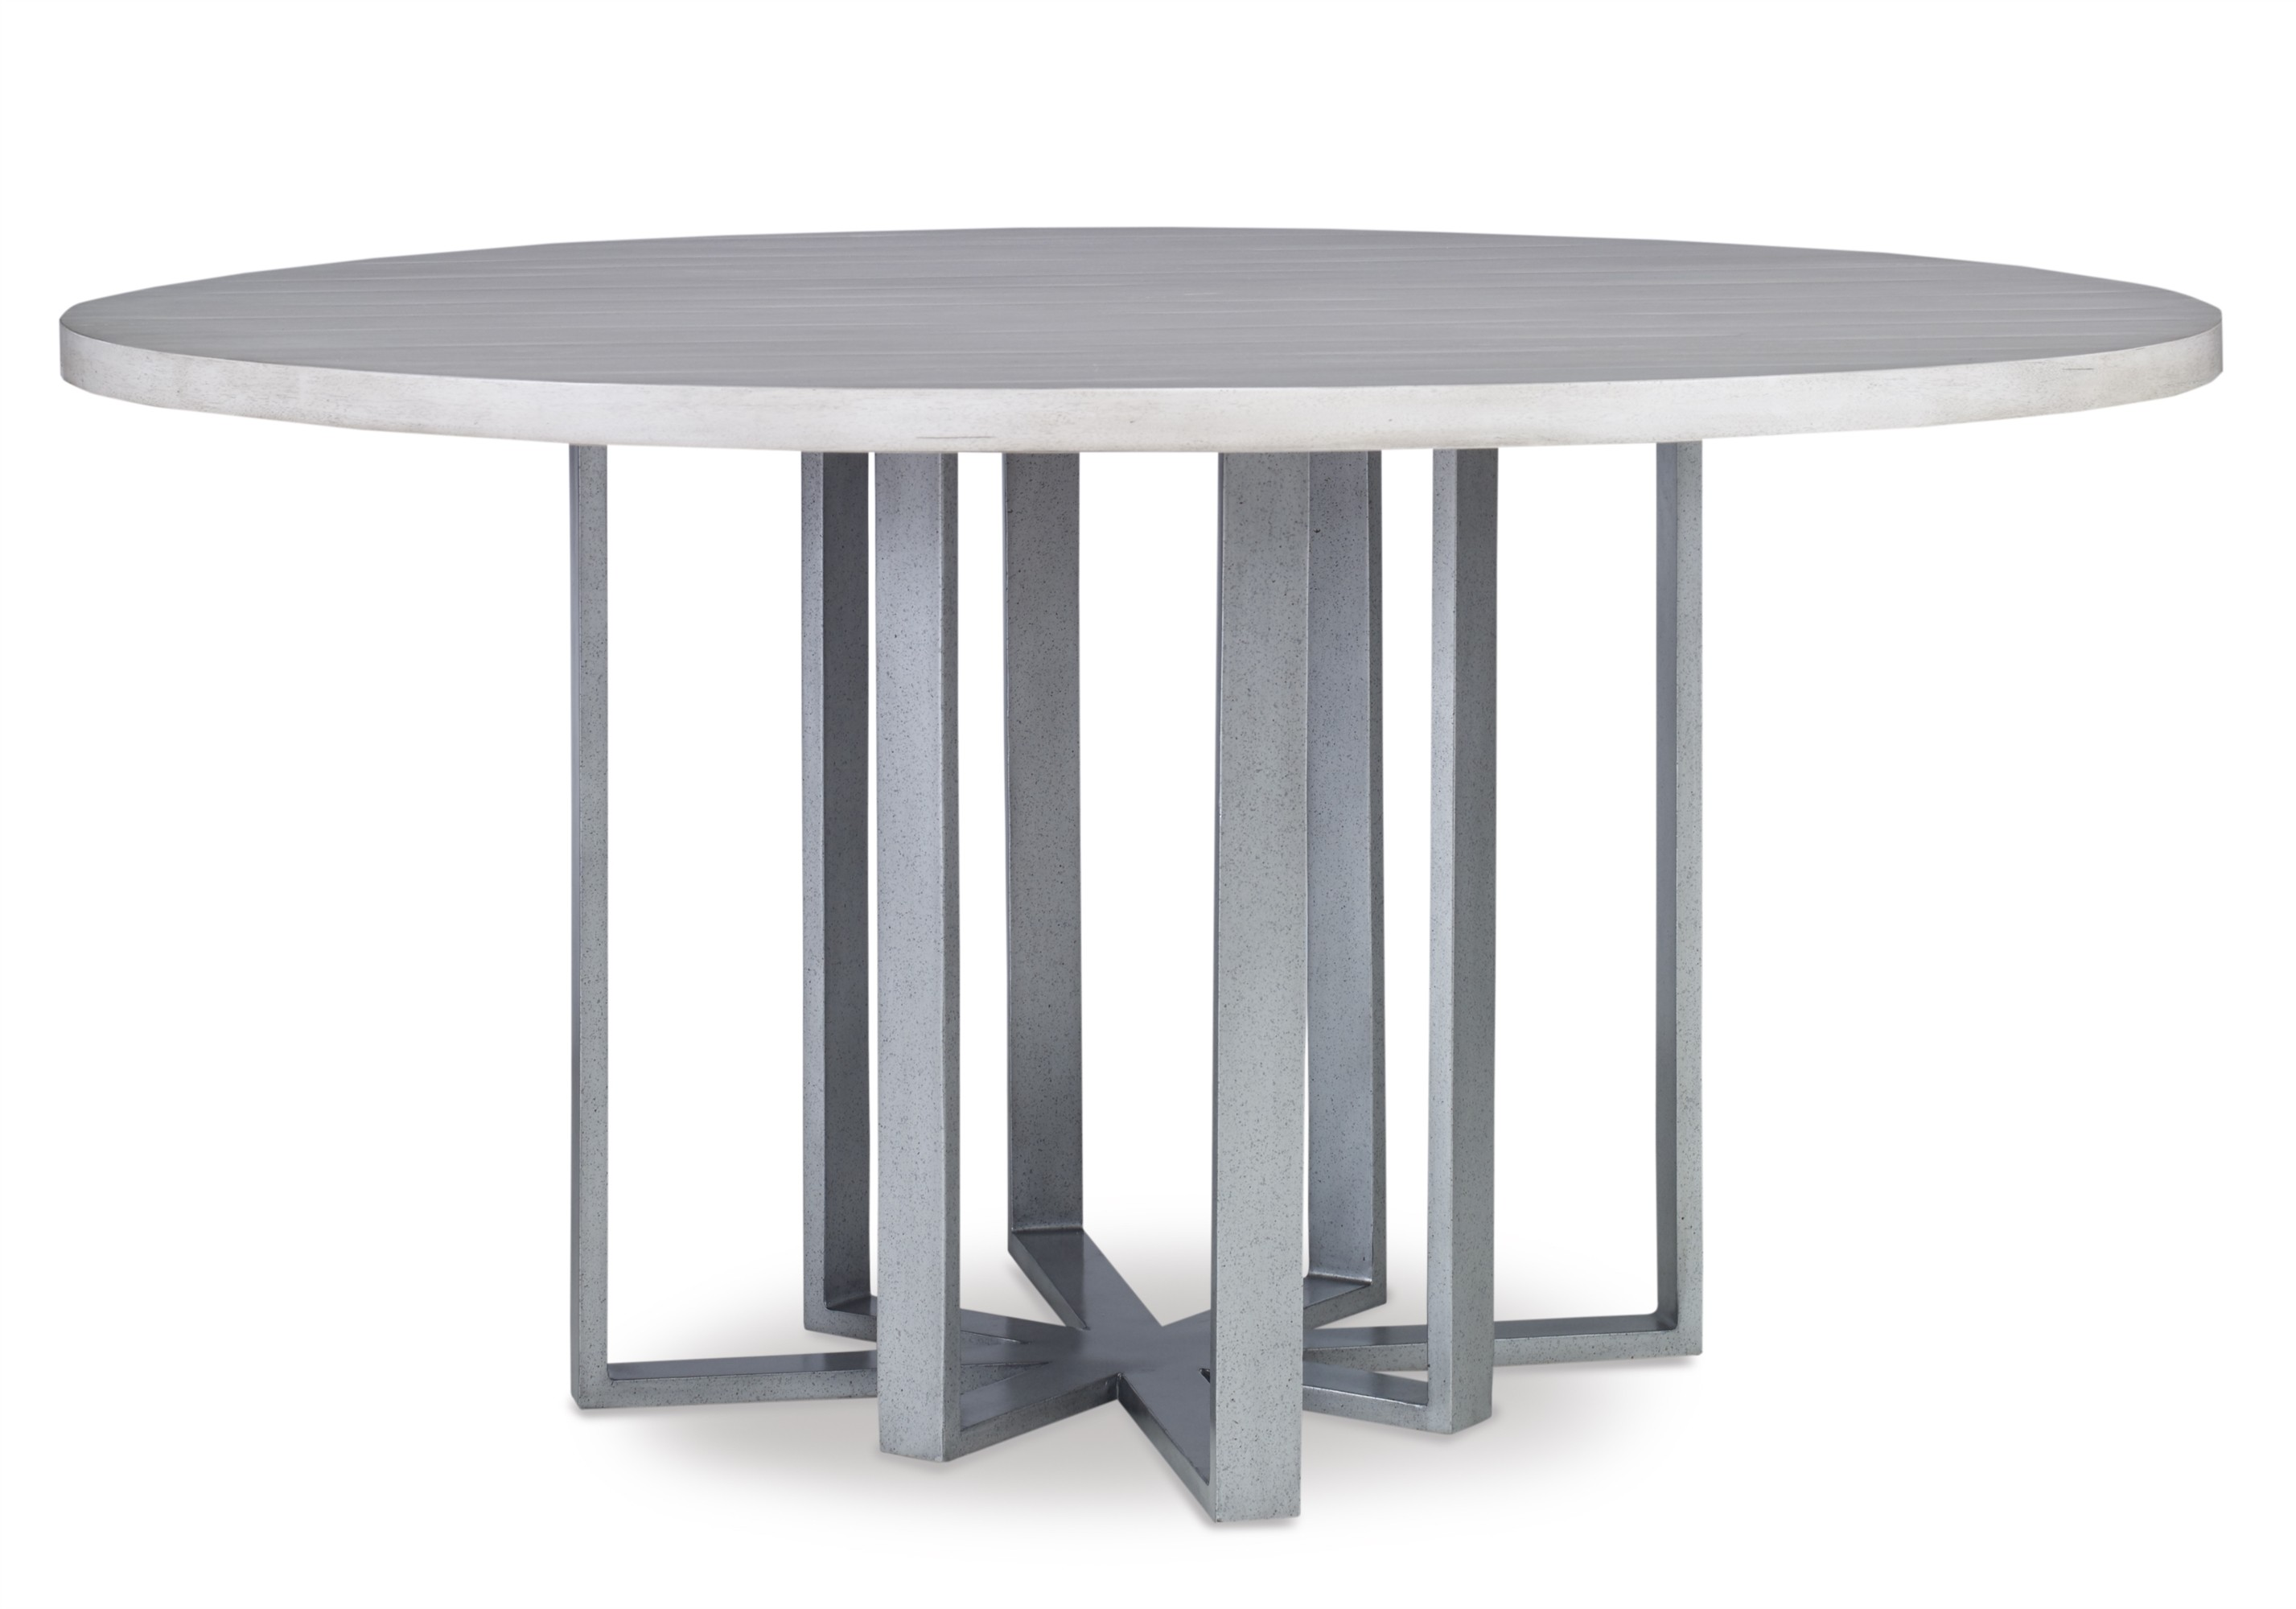 Fripp Round Dining Table-Peninsula (Lw-101-105,Lw-102-105, C105-101, C105-102)